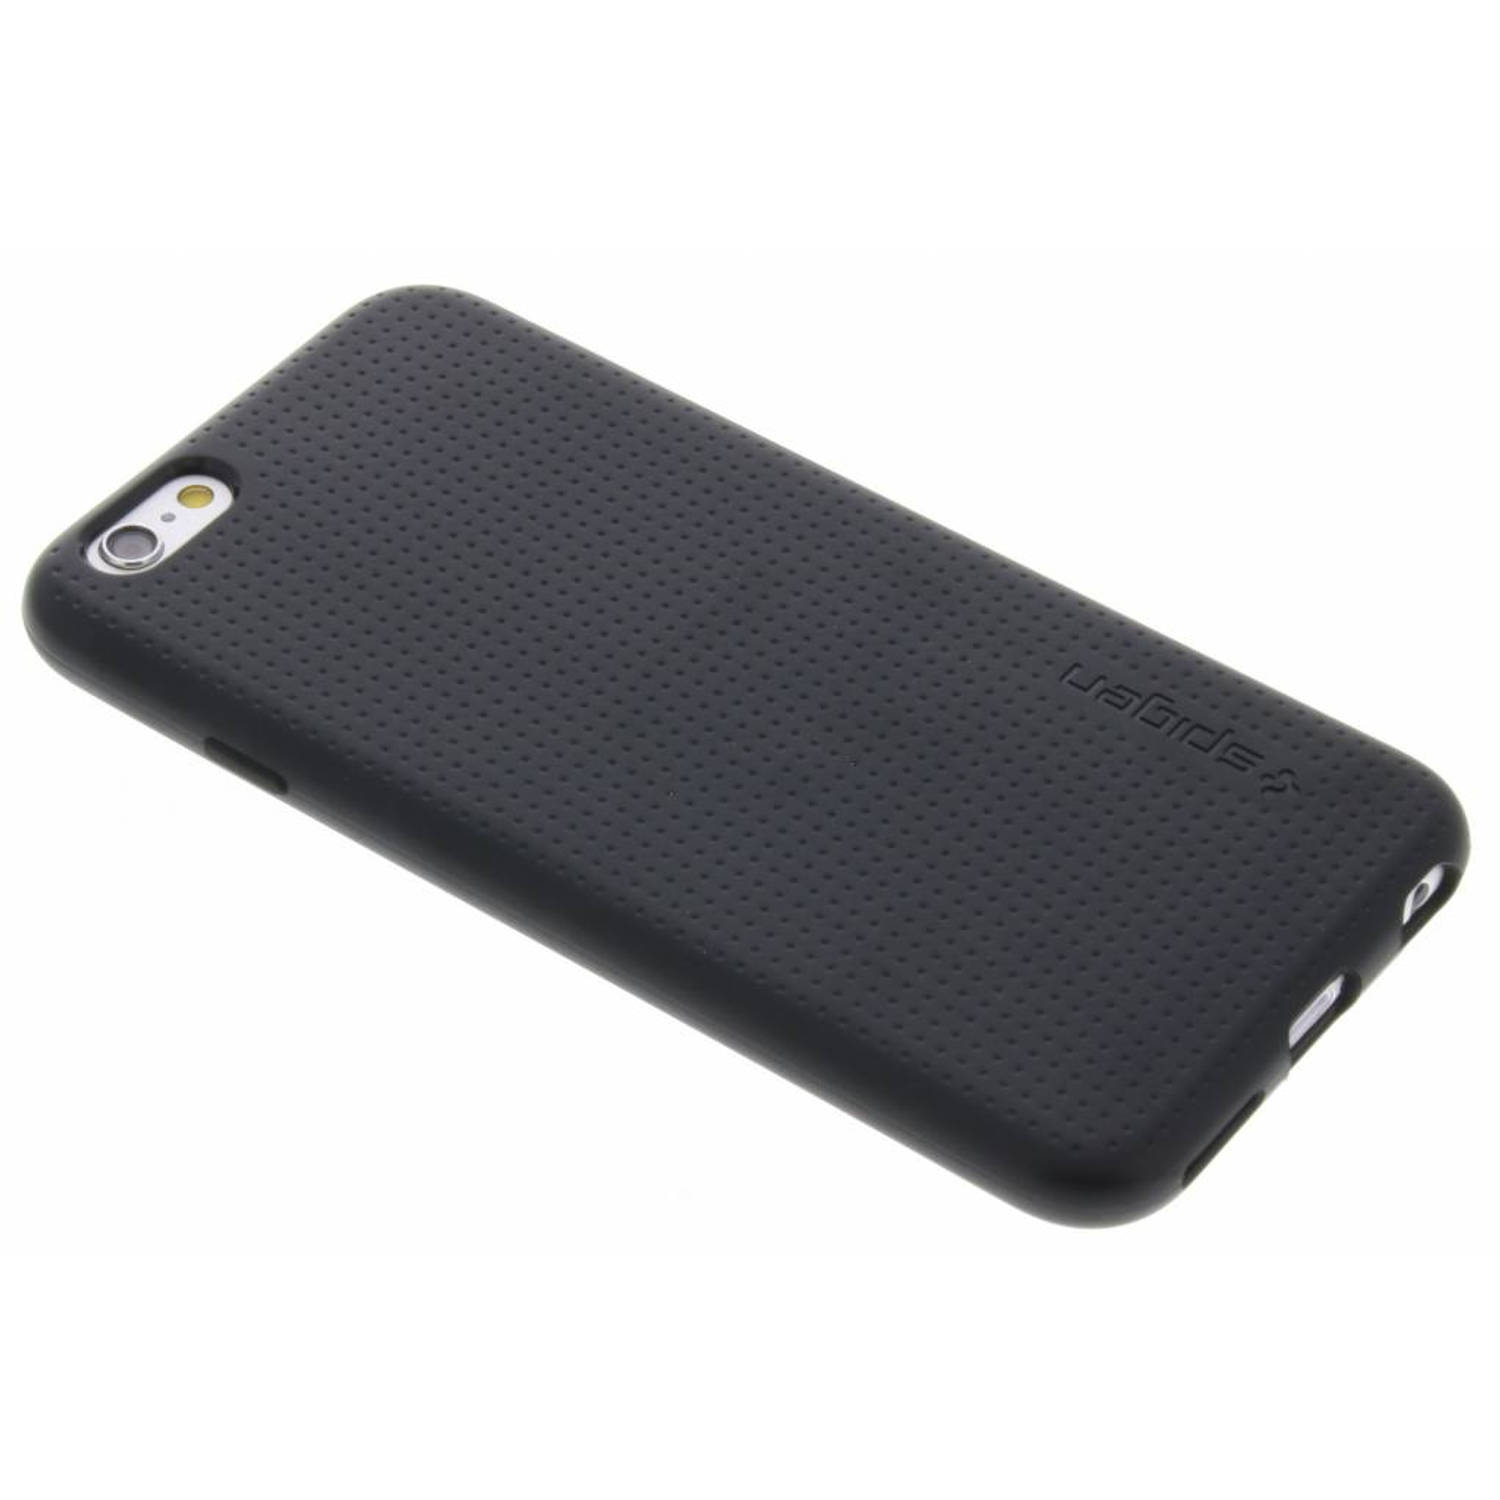 Zwarte Liquid Armor Case voor de iPhone 6 / 6s